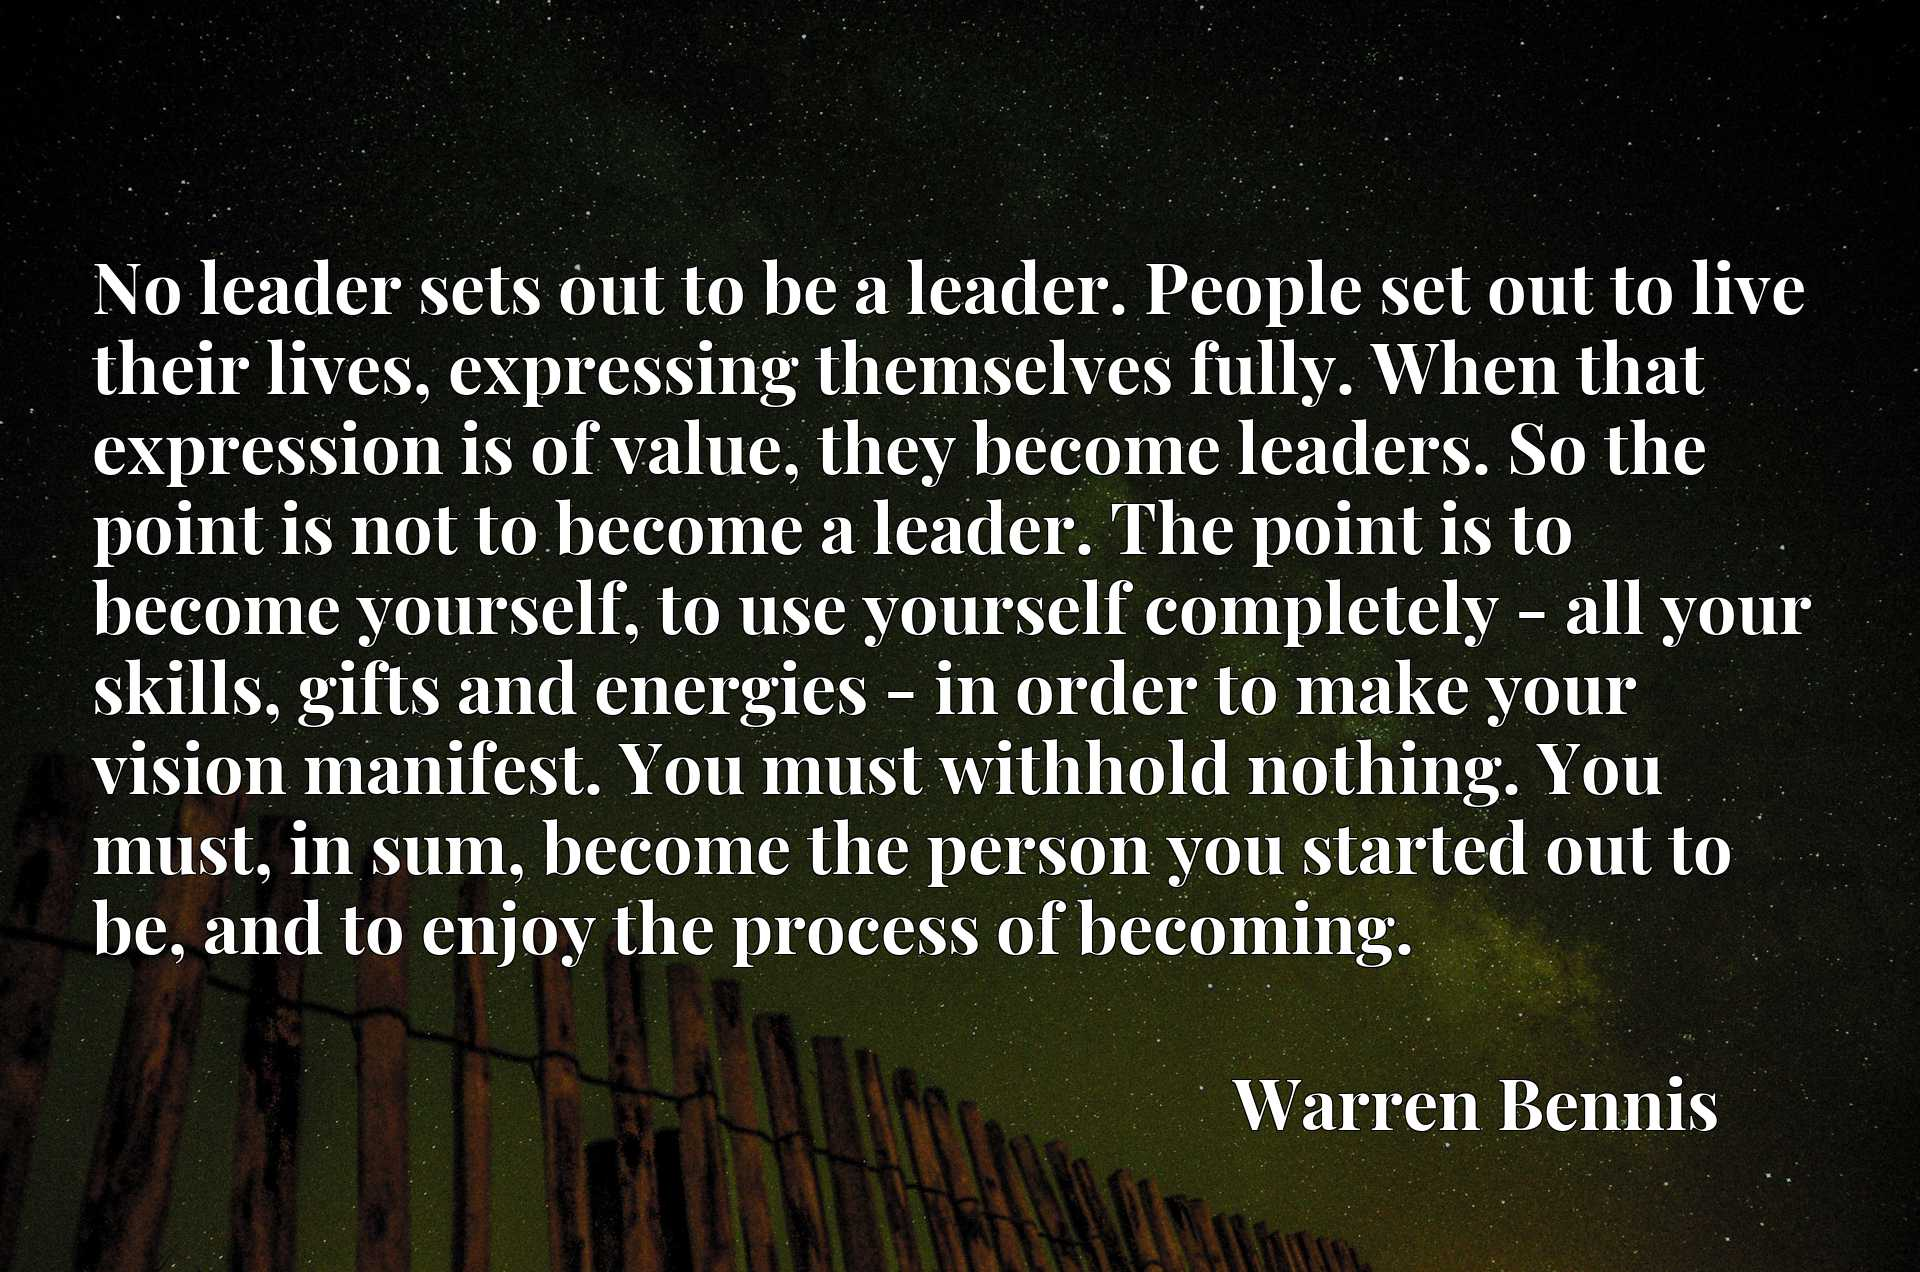 No leader sets out to be a leader. People set out to live their lives, expressing themselves fully. When that expression is of value, they become leaders. So the point is not to become a leader. The point is to become yourself, to use yourself completely - all your skills, gifts and energies - in order to make your vision manifest. You must withhold nothing. You must, in sum, become the person you started out to be, and to enjoy the process of becoming.